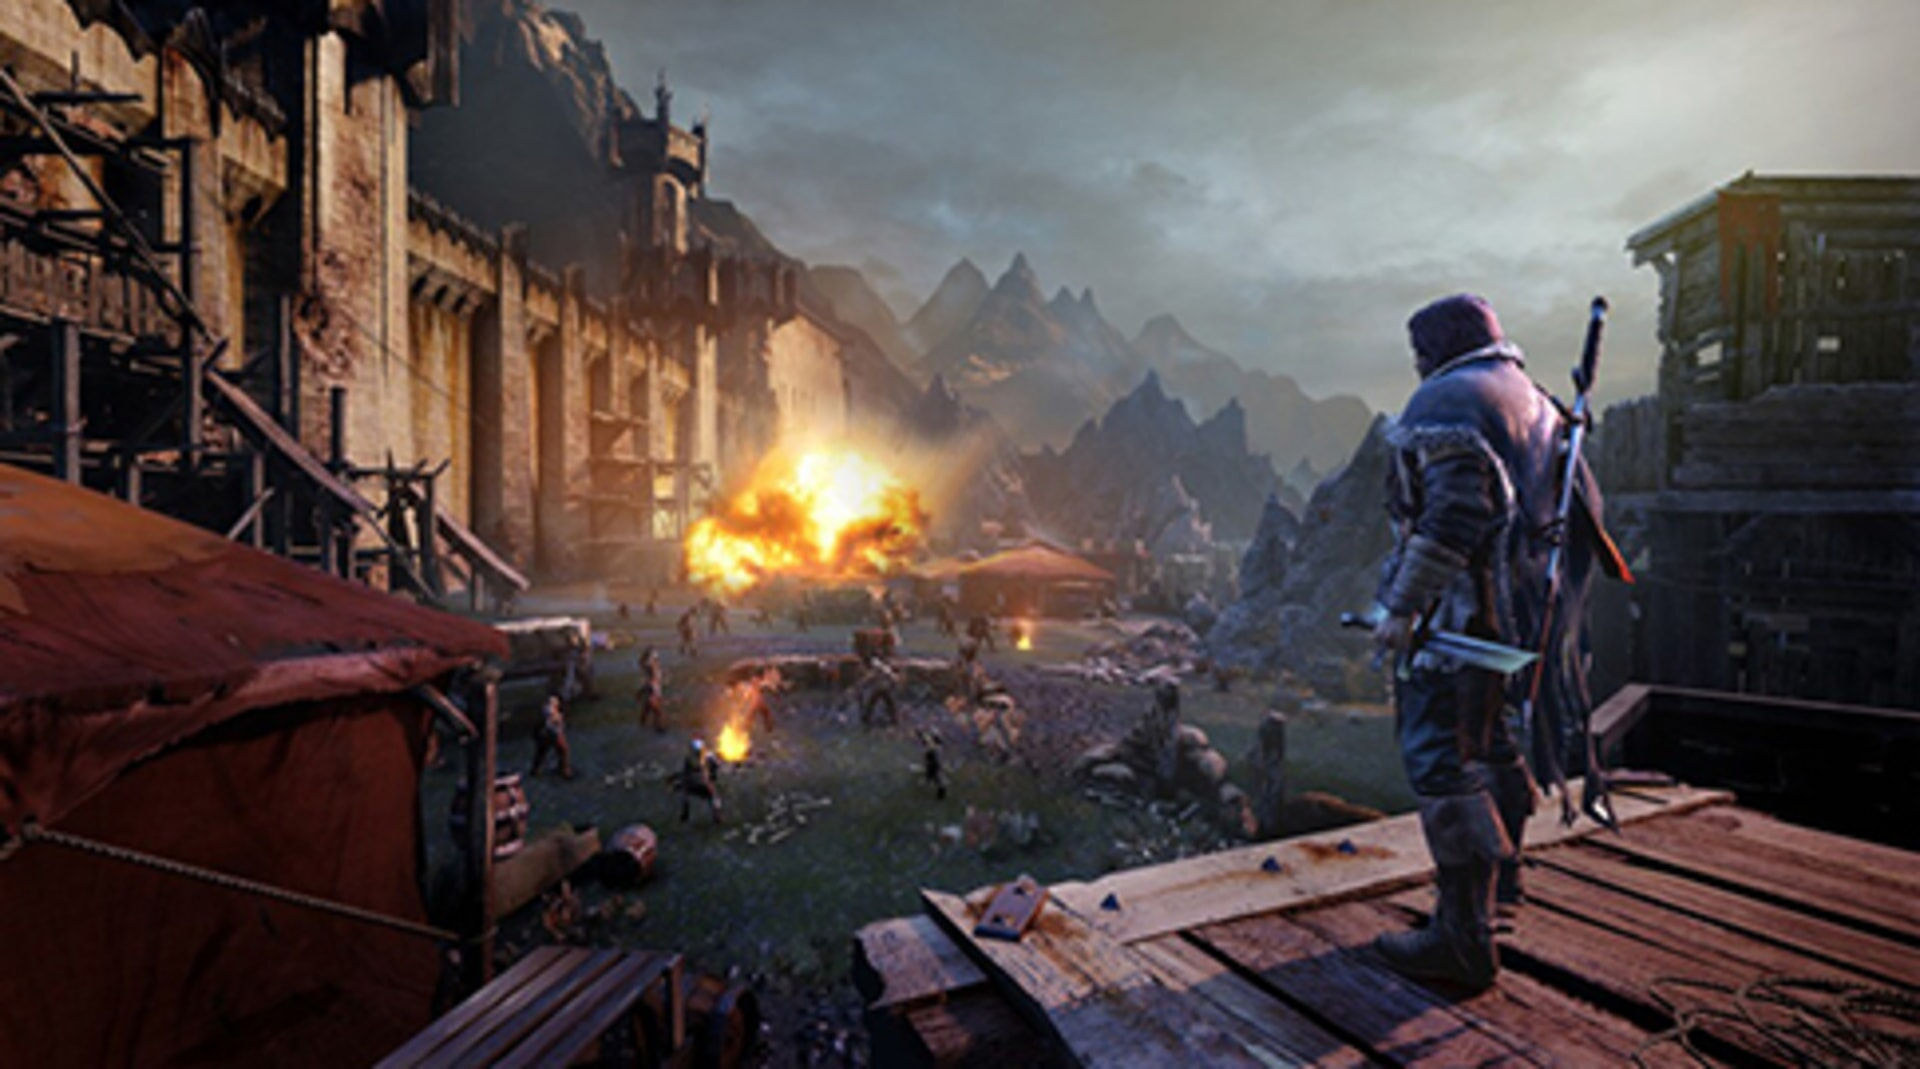 Middle-earth: Shadow of Mordor - Image 2